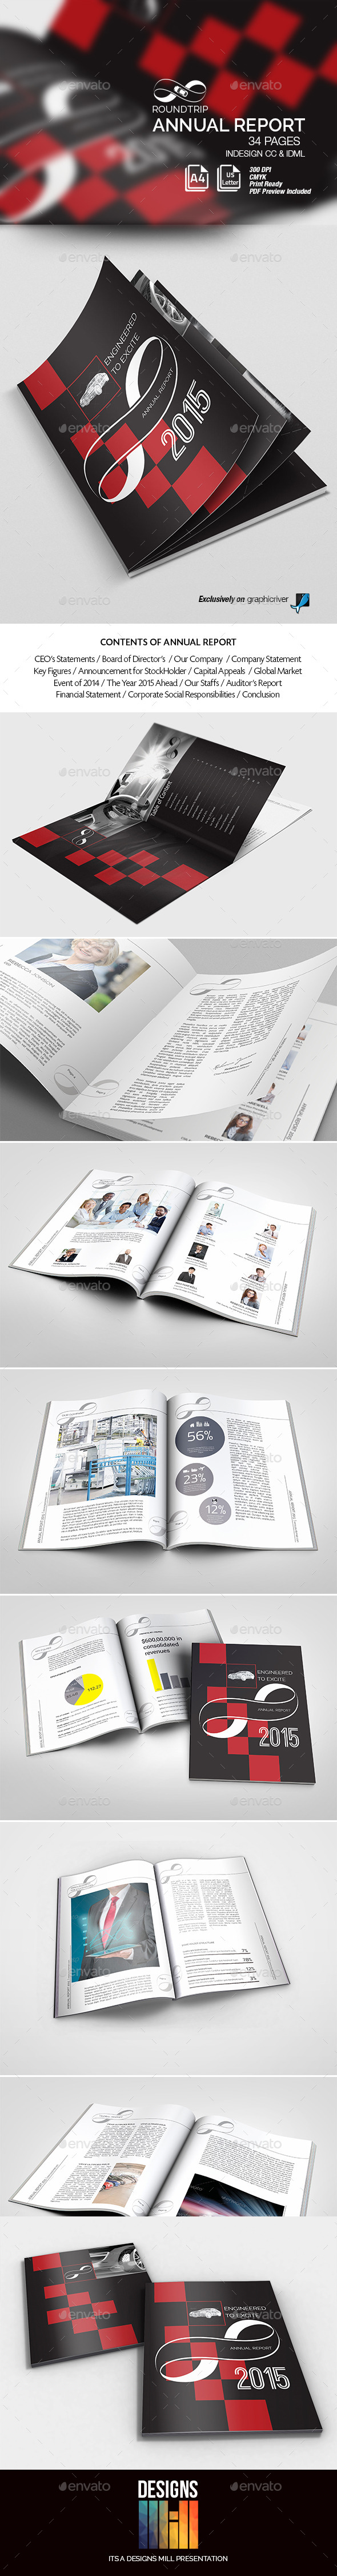 Round Trip Annual Report - Corporate Brochures